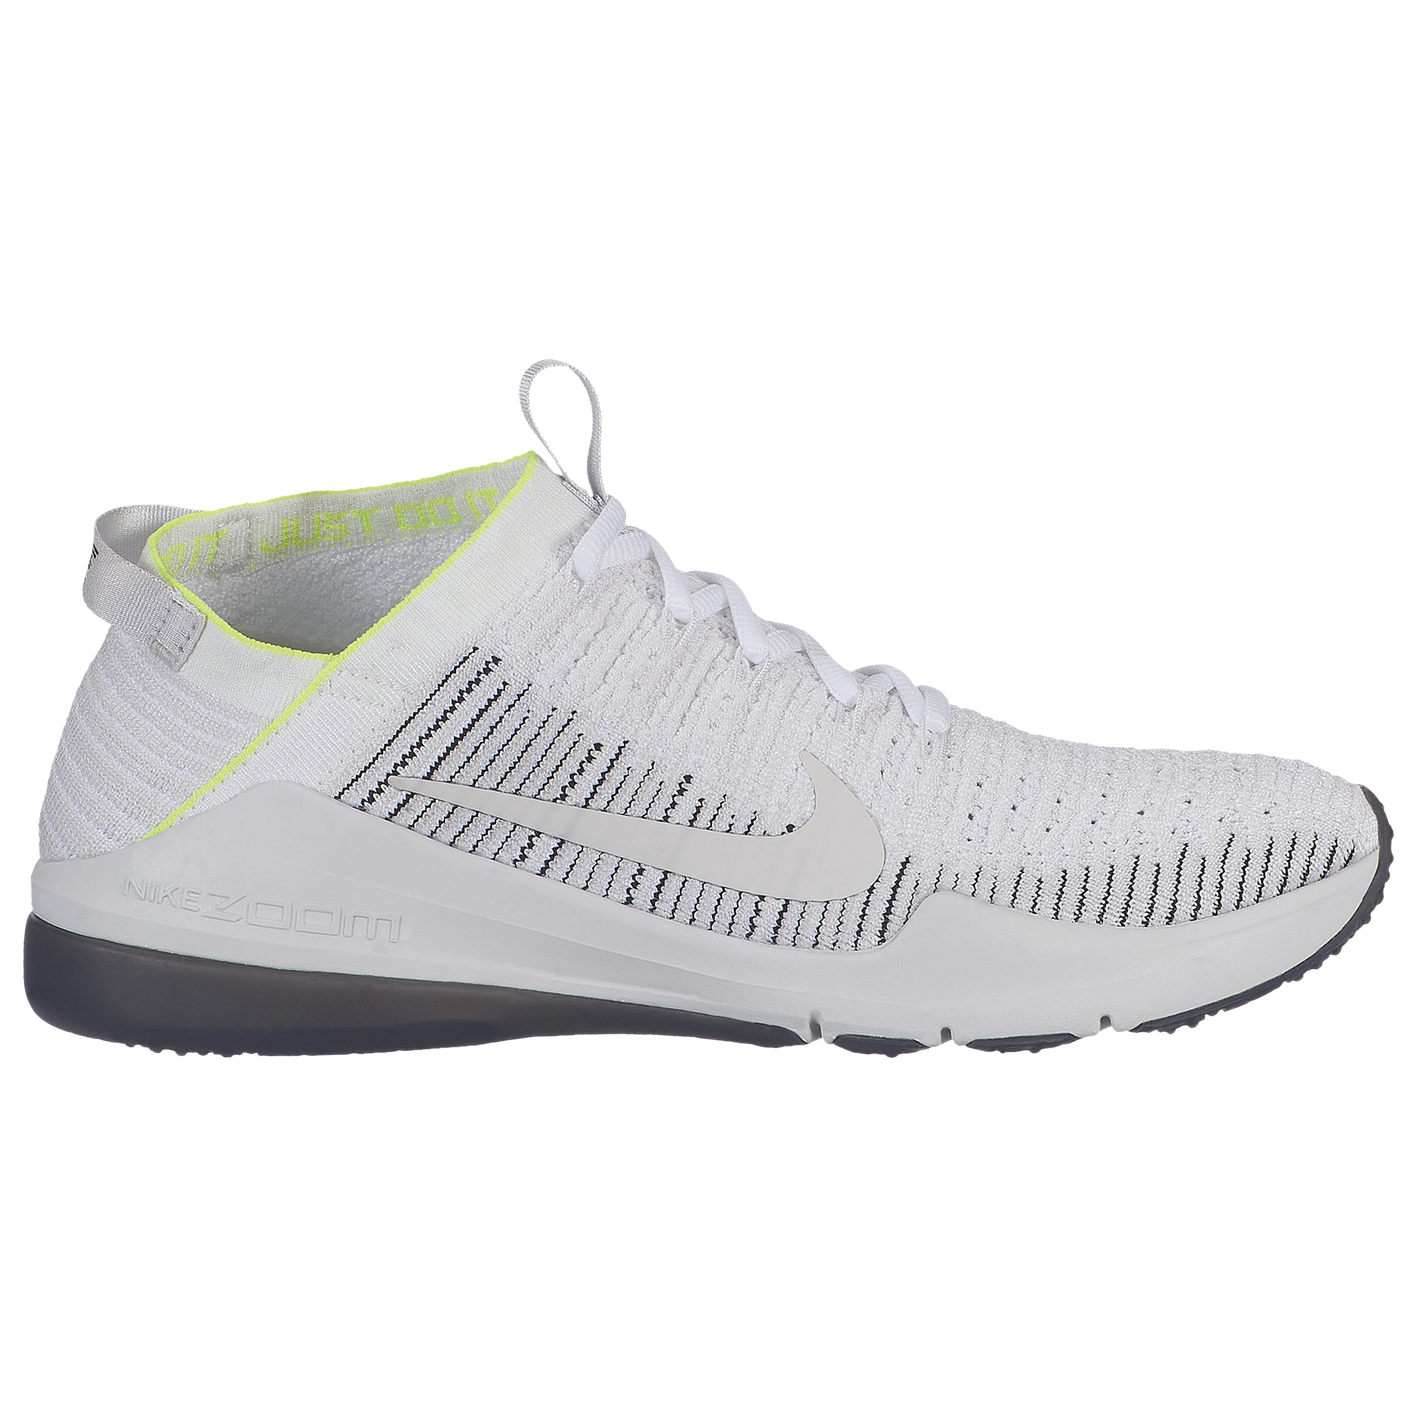 5e2a57dce91c04 Nike Air Zoom Fearless Flyknit 2 - Women s - Training - Shoes ...